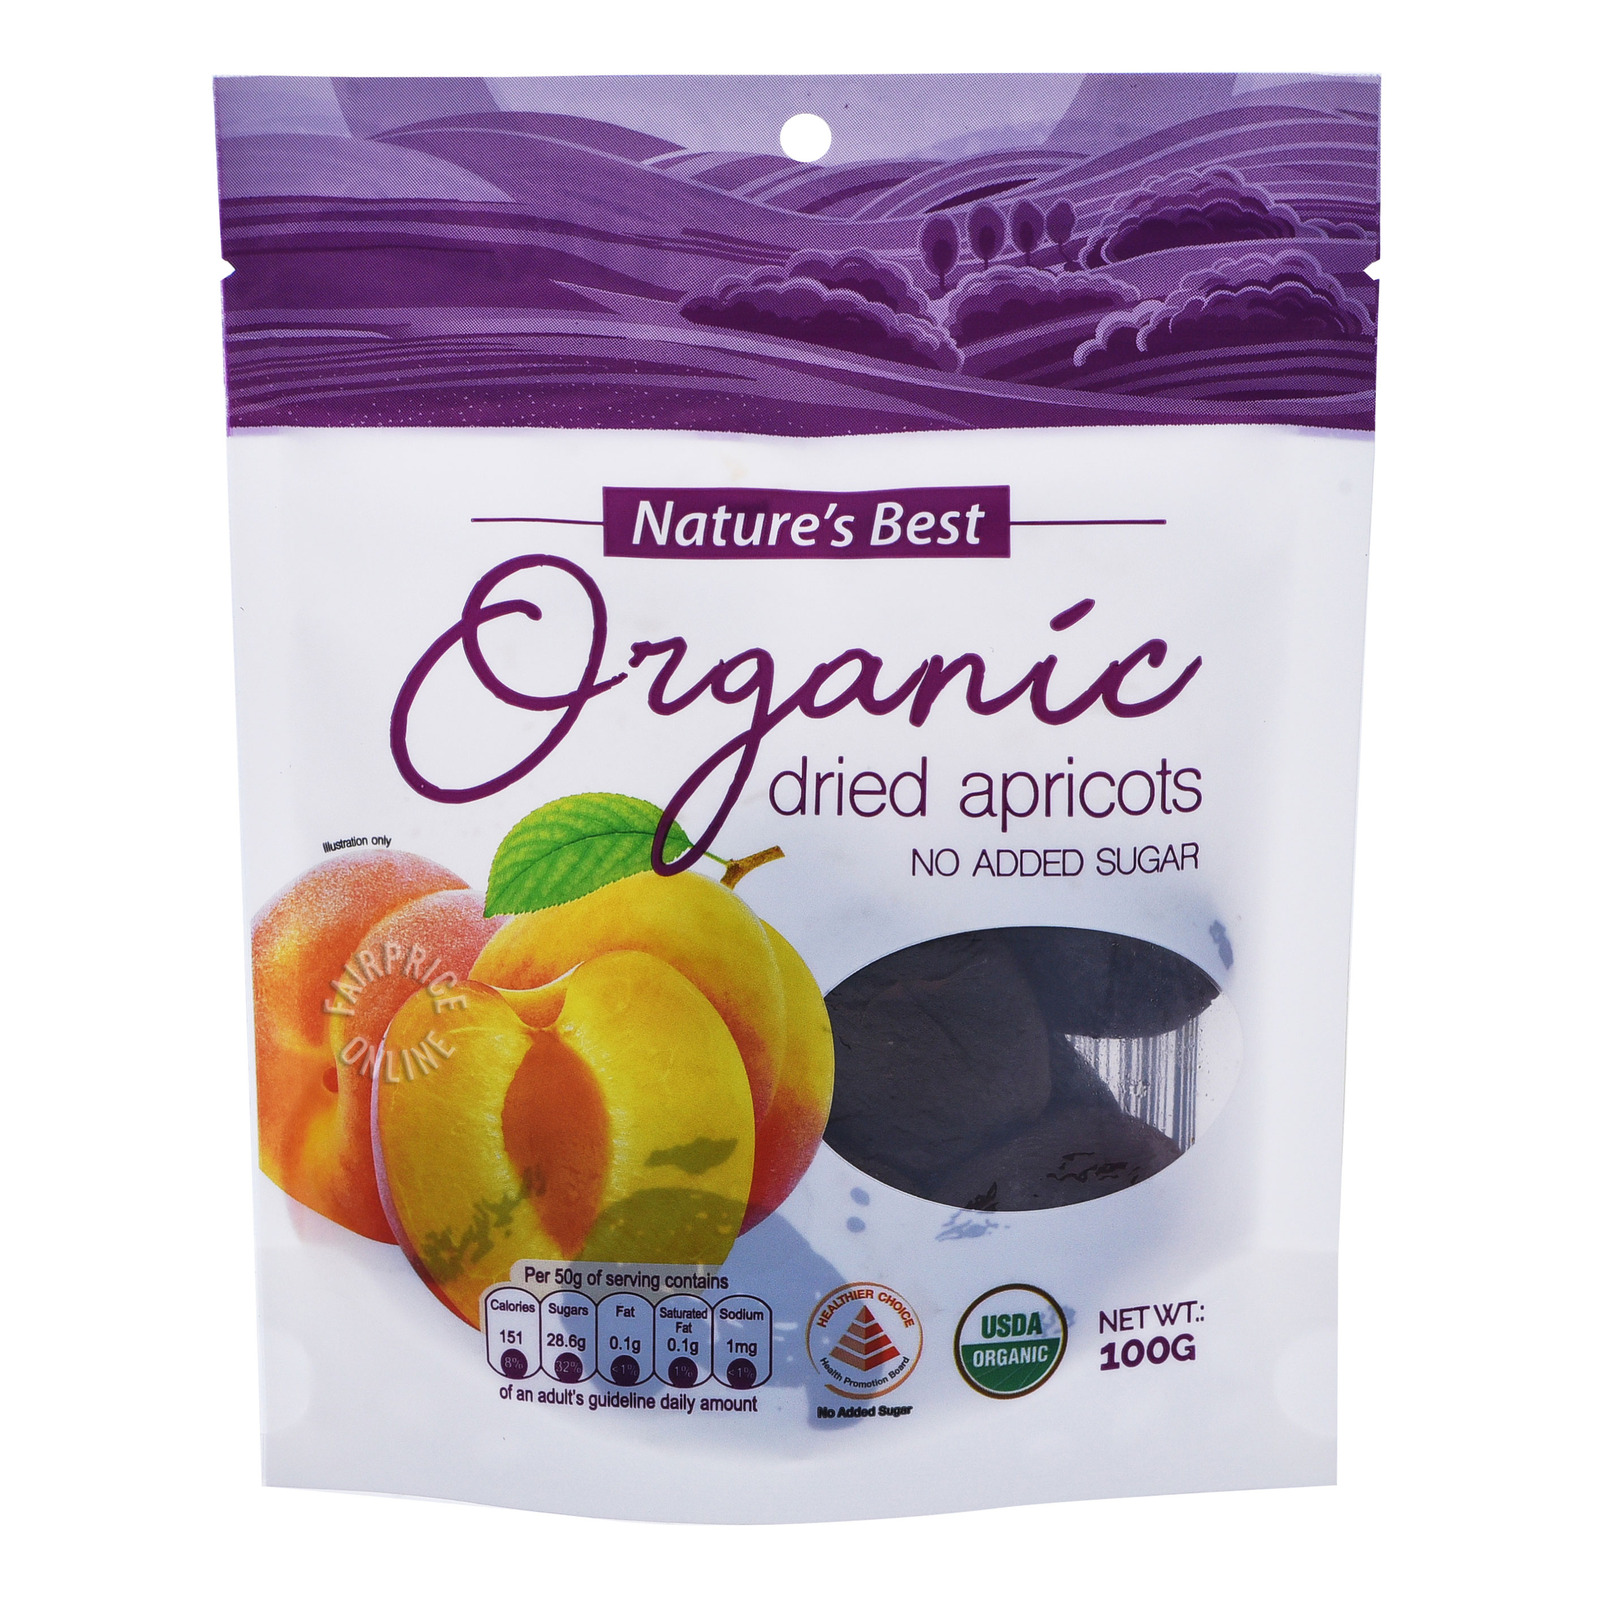 Nature's Best Organic Dried Apricots (No Added Sugar)